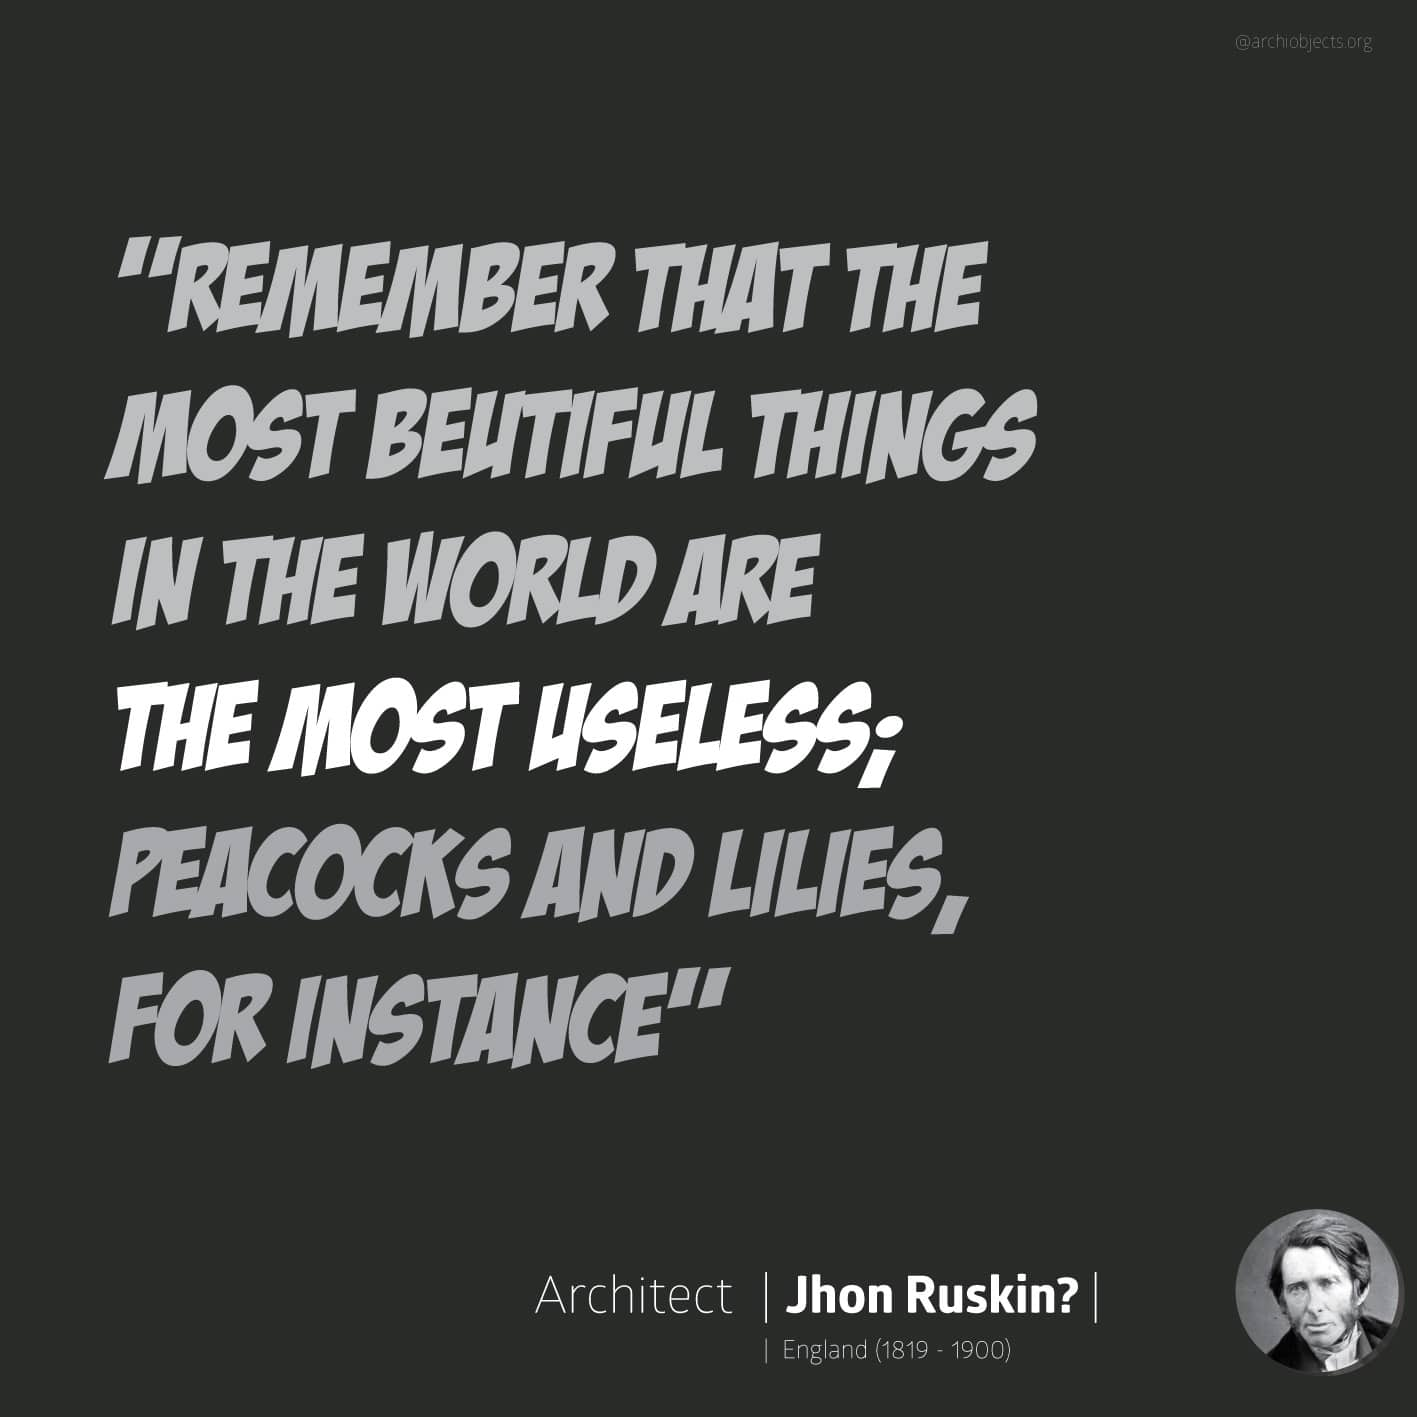 john ruskin quote Architectural Quotes - Worth spreading Architects' voice